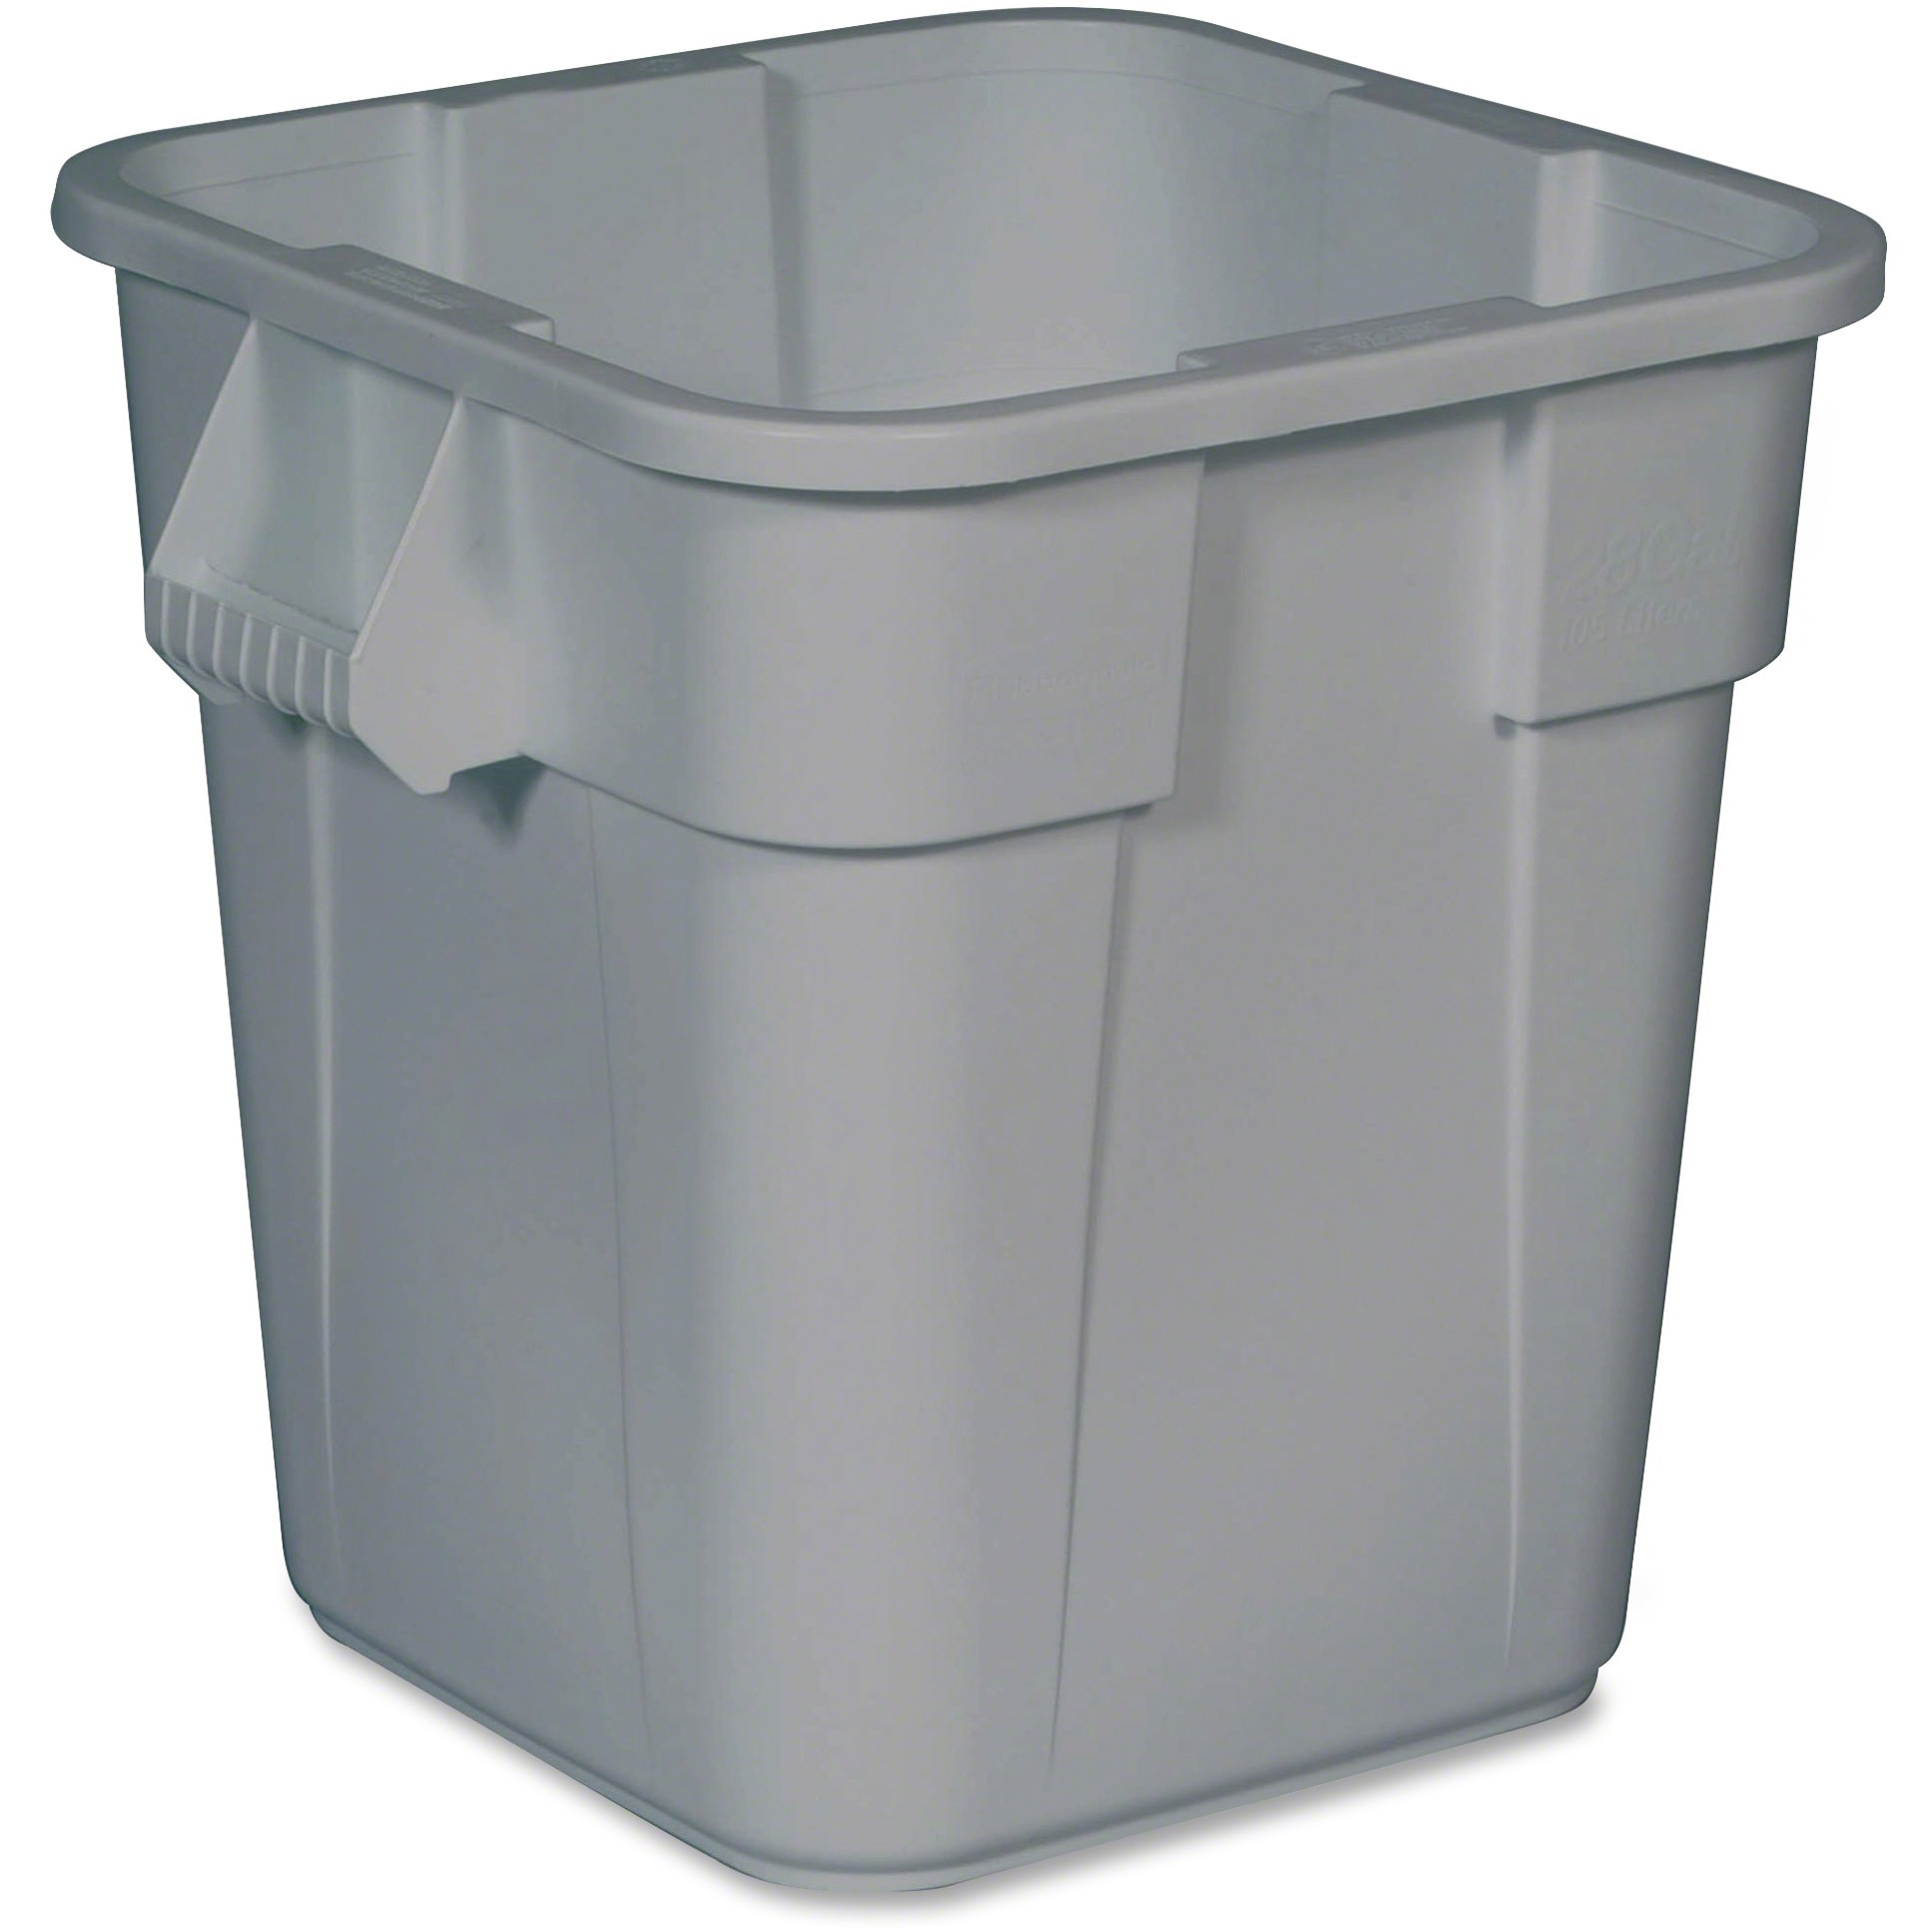 Rubbermaid Commercial, RCP352600GY, Square Brute Container, 1, Gray